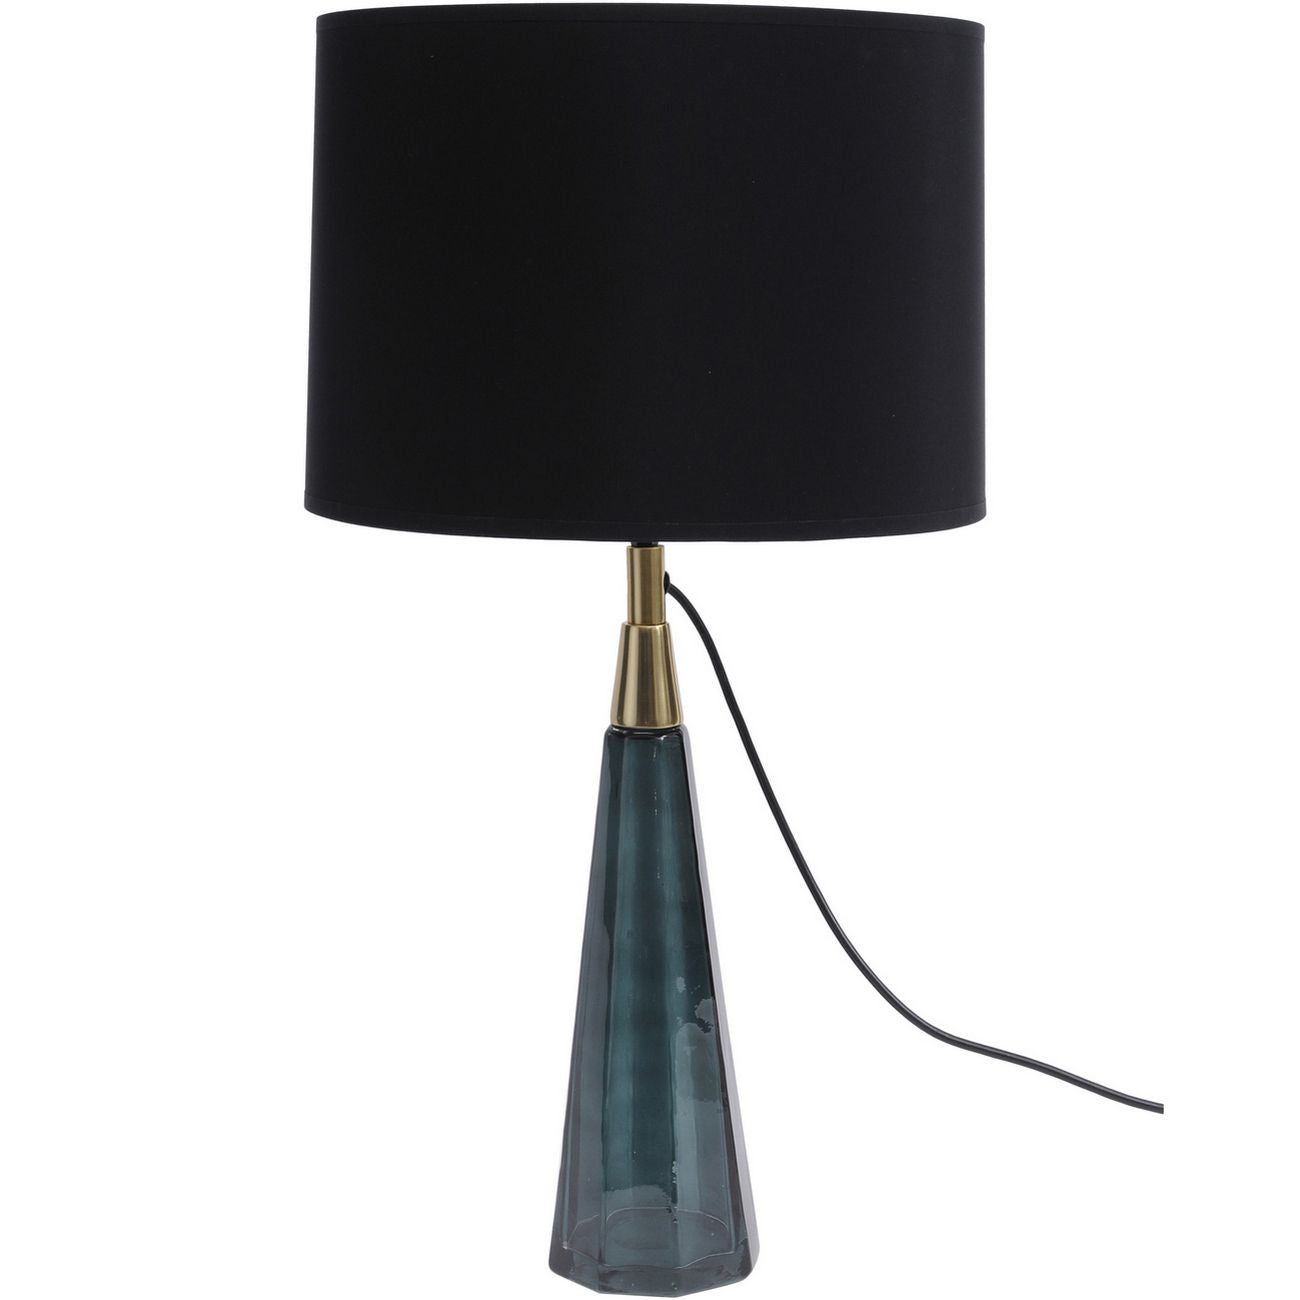 Poloma Green Glass Faceted Table Lamp